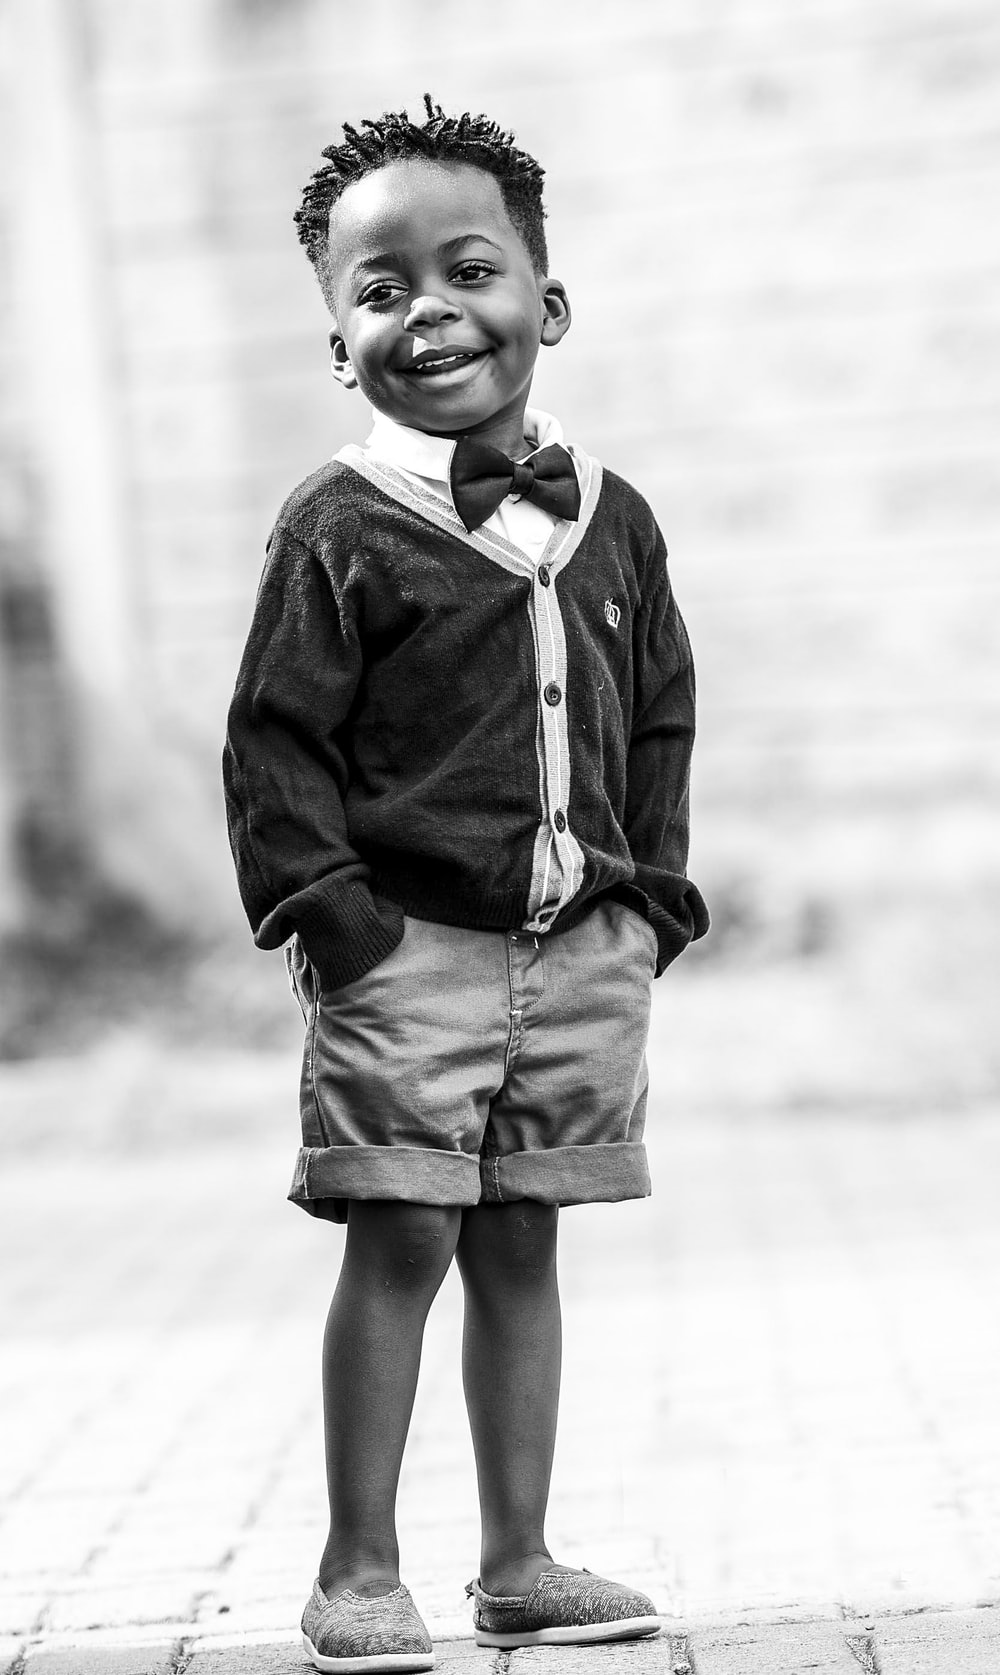 Black Child Pictures | Download Free Images on Unsplash